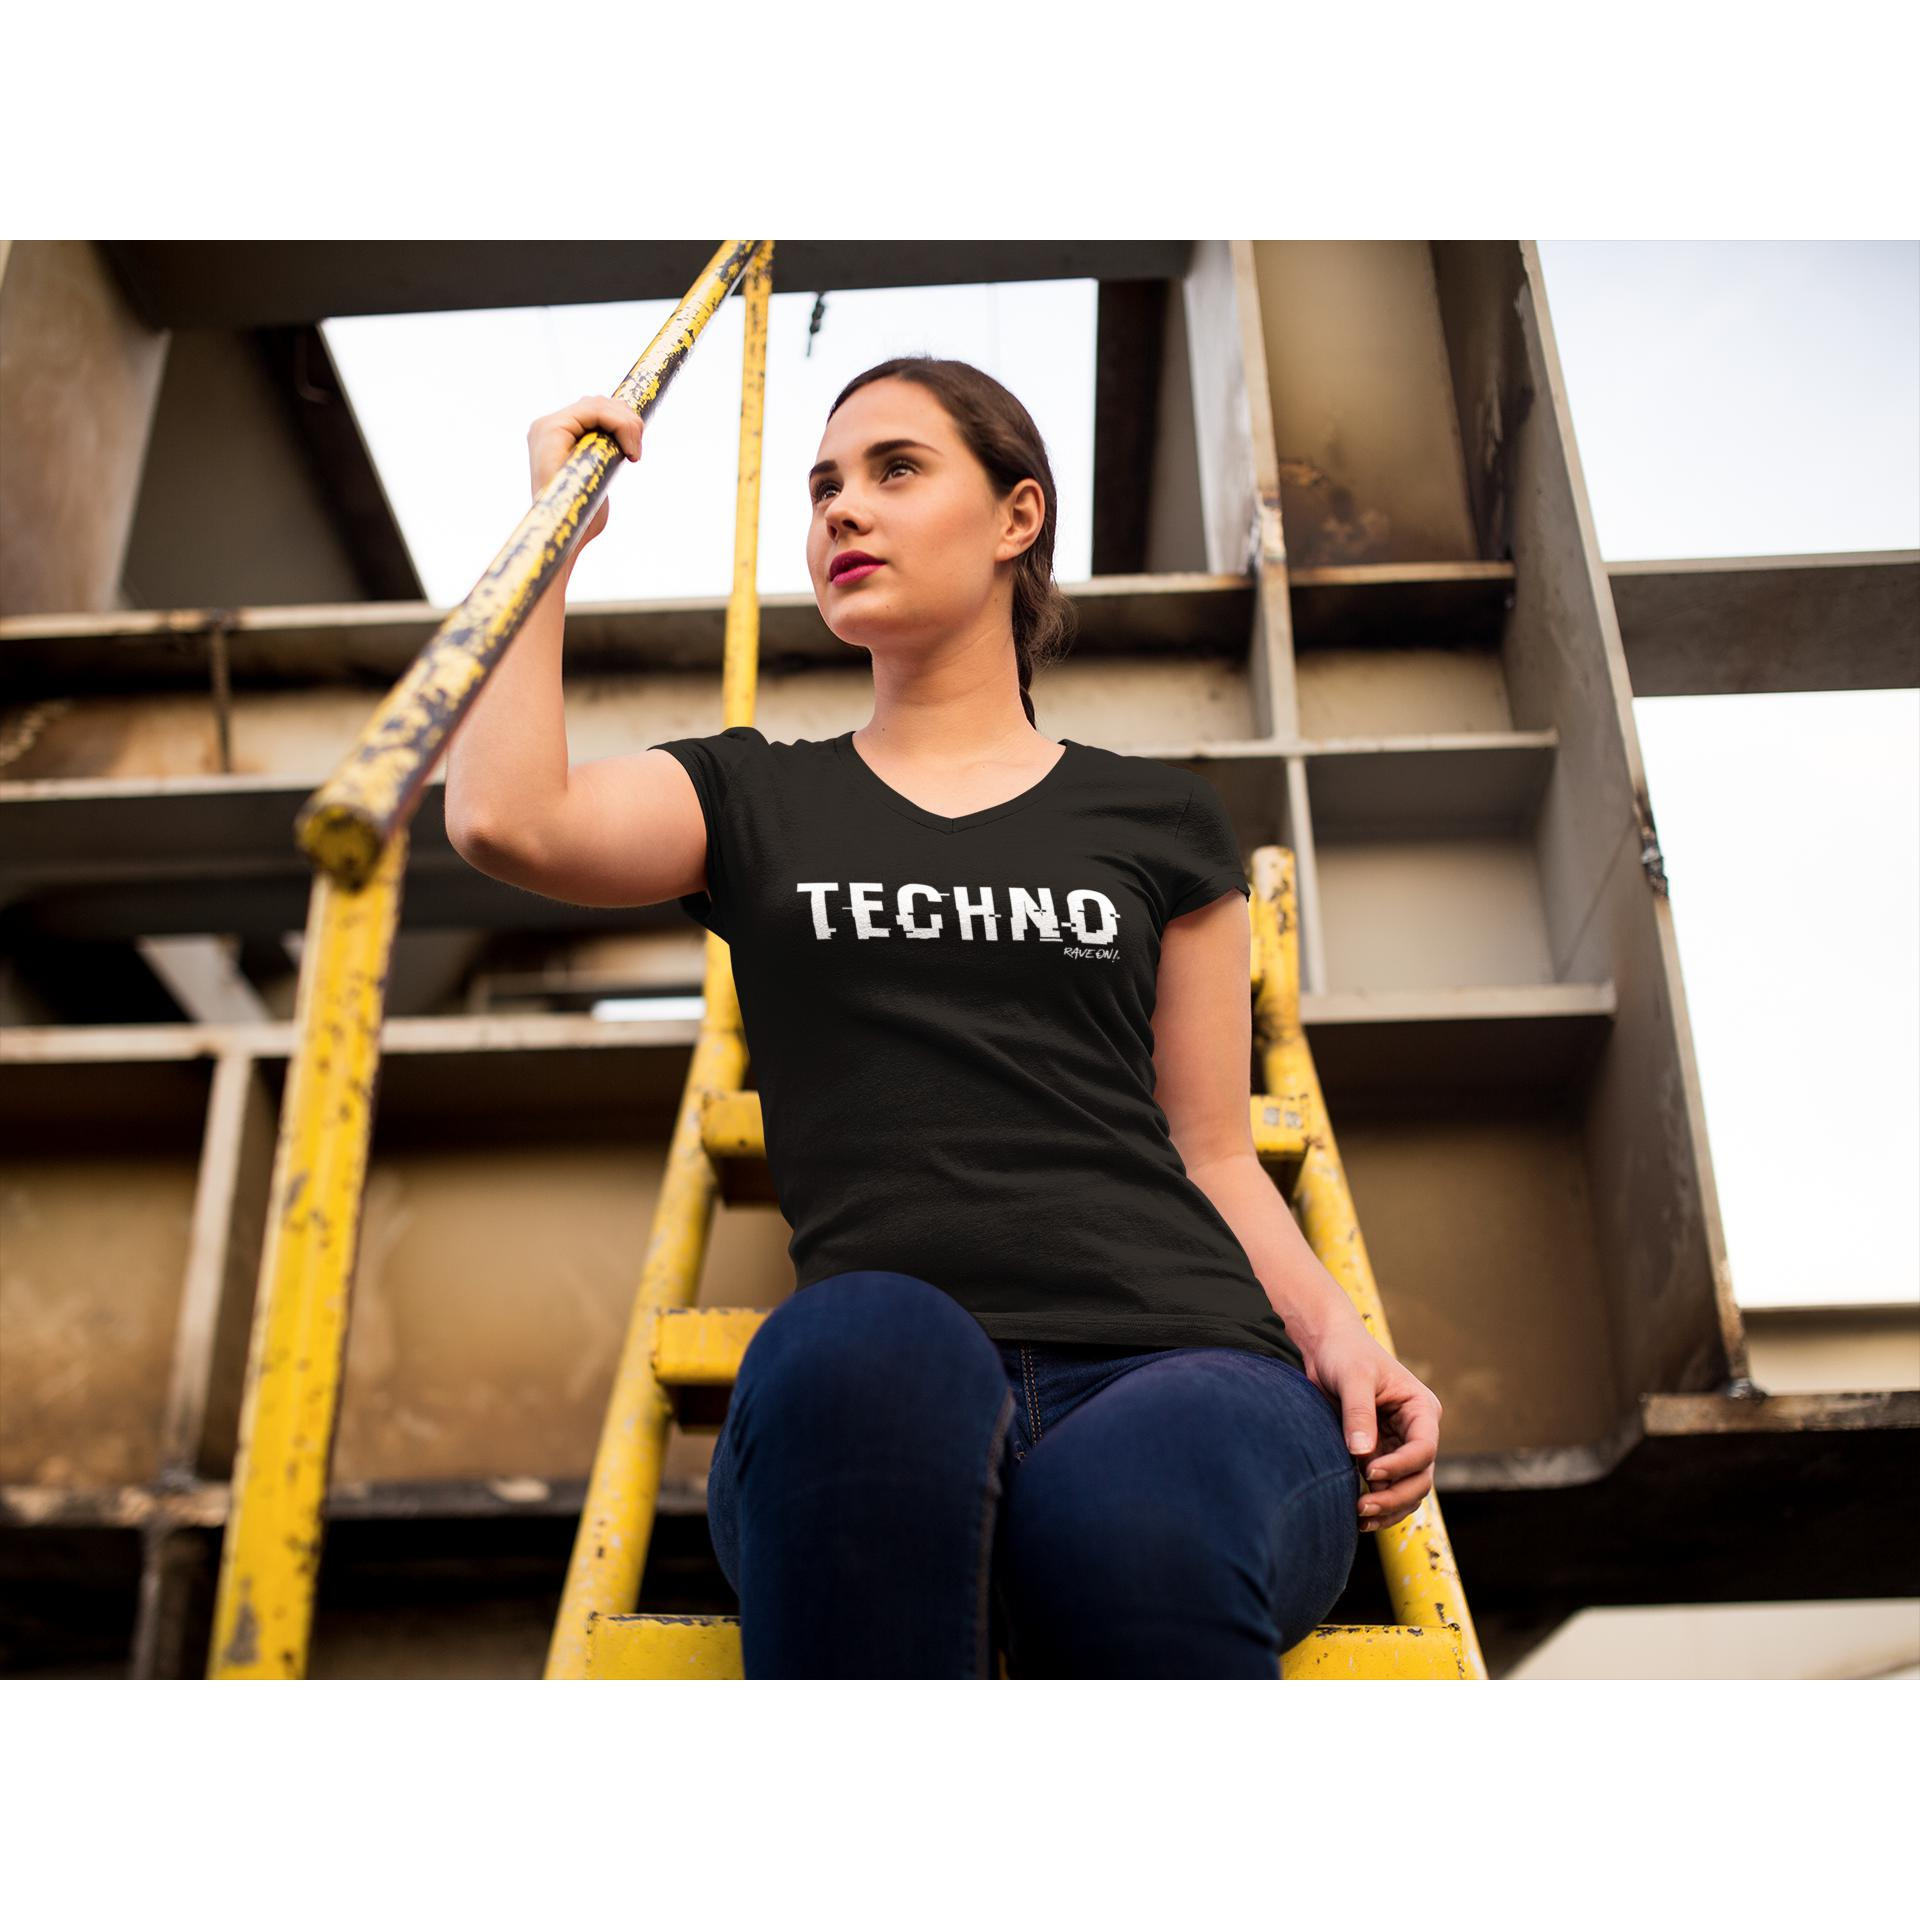 TECHNO shifted Rave On!® - Ladies Shirt Ladies Basic T-Shirt - Rave On!® the club & techno scene shop for cool young fashion streetwear style & fashion outfits + sexy festival 420 stuff